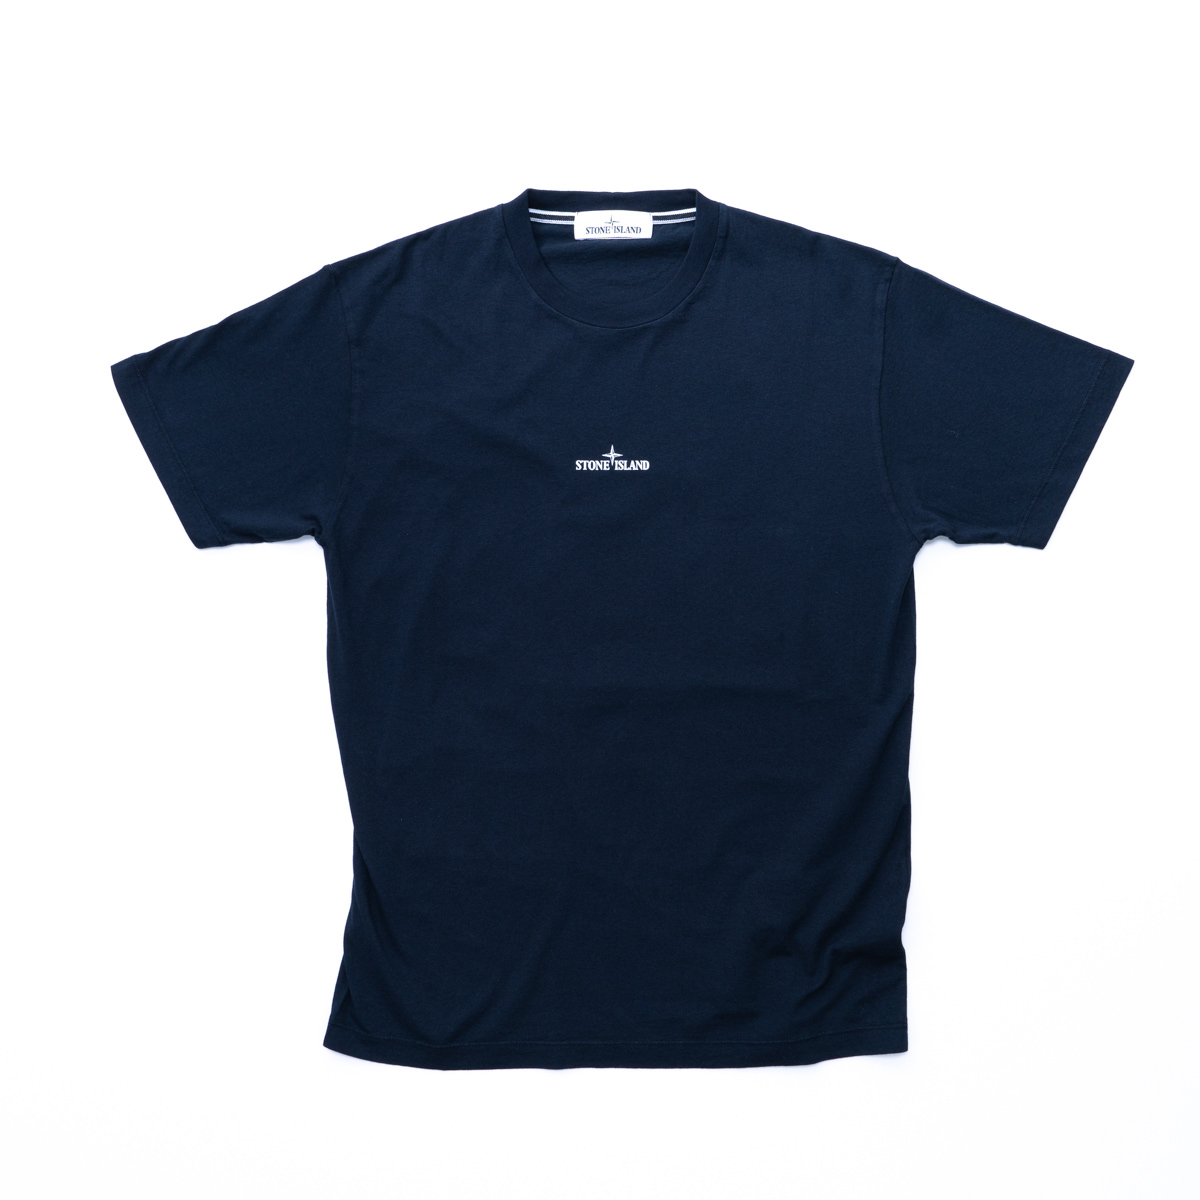 Stone Island T-SHIRTS AND POLOS